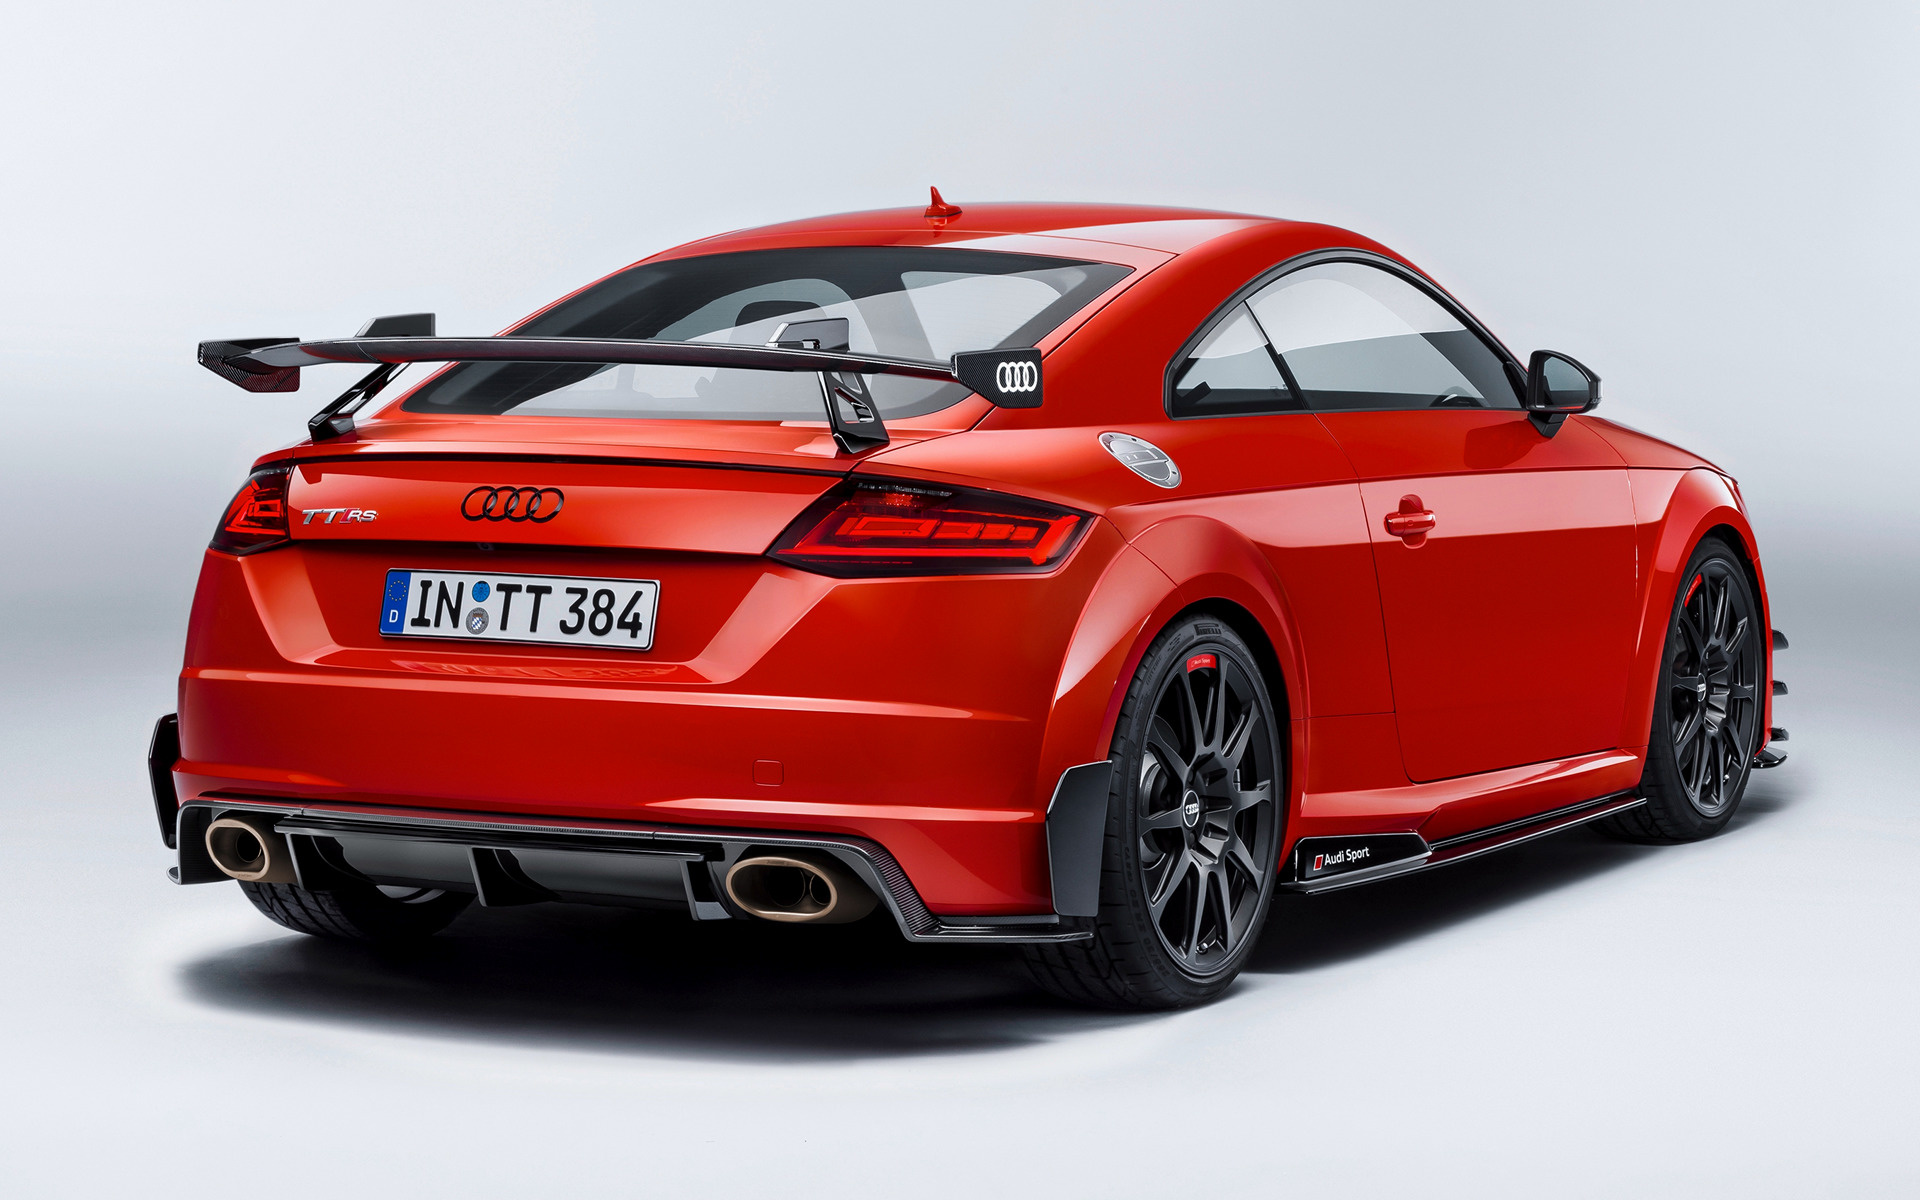 2017 Audi TT RS Coupe with Performance Parts - Wallpapers ...